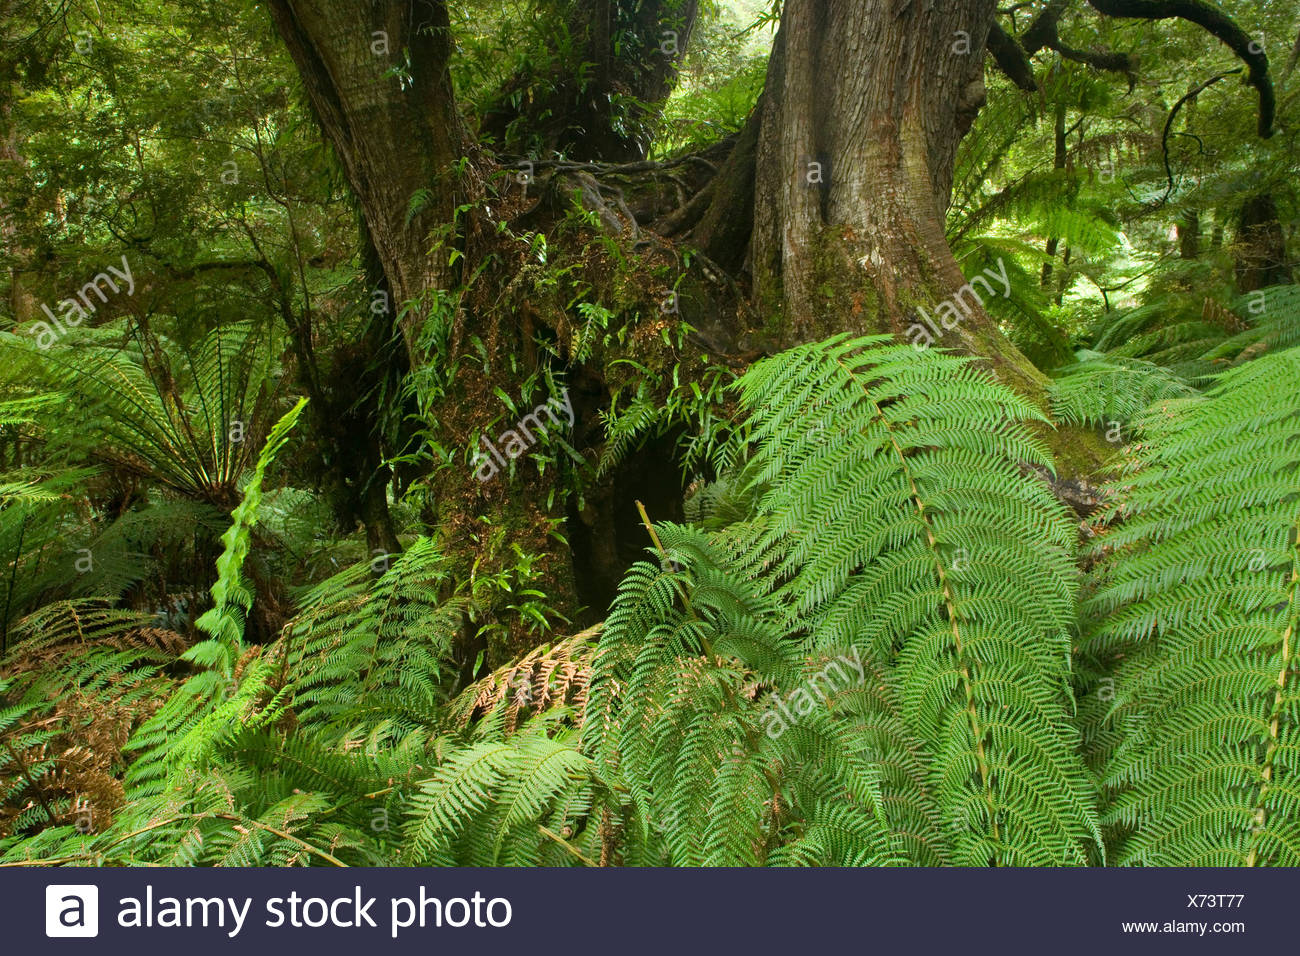 Myrtle Beech (Nothofagus cunninghamii), Temperate rainforest - lush temperate rainforest with Myrtle Beeches, and lots of treefern, ground-growing fern and fungi , Australia, Victoria, Great Ocean Road, Great Otways National Park - Stock Image